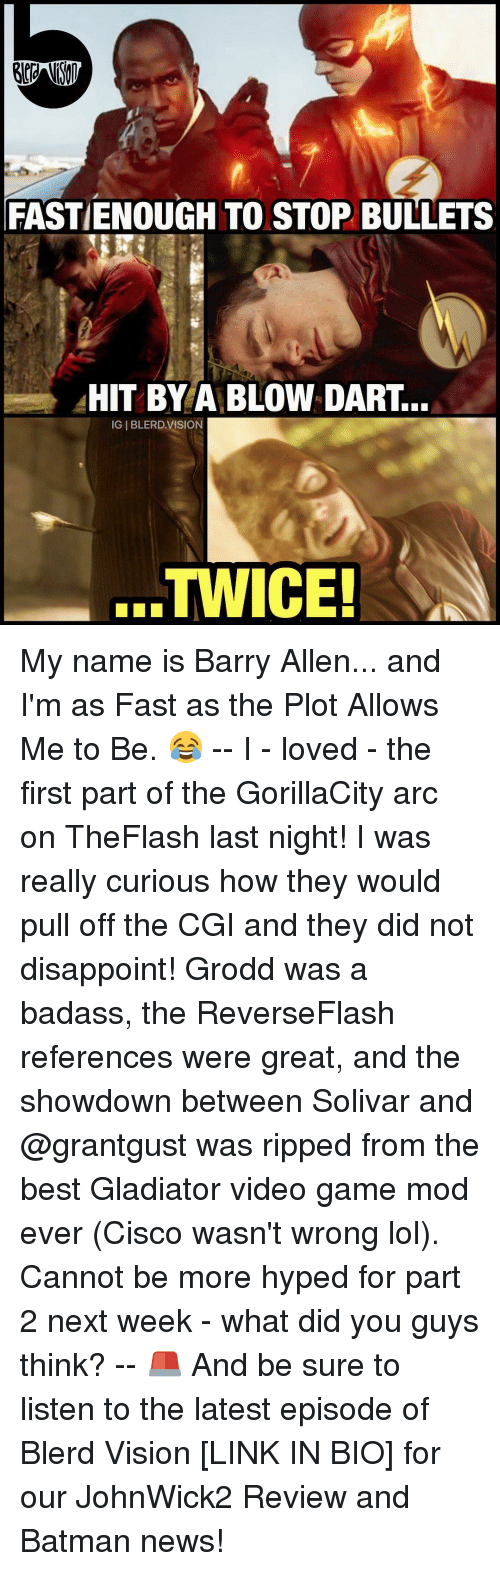 barry allen: FASTIENOUGH TO STOP BULLETS  HIT BY A BLOW DART.  IGIBLERD VISION  TWICE! My name is Barry Allen... and I'm as Fast as the Plot Allows Me to Be. 😂 -- I - loved - the first part of the GorillaCity arc on TheFlash last night! I was really curious how they would pull off the CGI and they did not disappoint! Grodd was a badass, the ReverseFlash references were great, and the showdown between Solivar and @grantgust was ripped from the best Gladiator video game mod ever (Cisco wasn't wrong lol). Cannot be more hyped for part 2 next week - what did you guys think? -- 🚨 And be sure to listen to the latest episode of Blerd Vision [LINK IN BIO] for our JohnWick2 Review and Batman news!